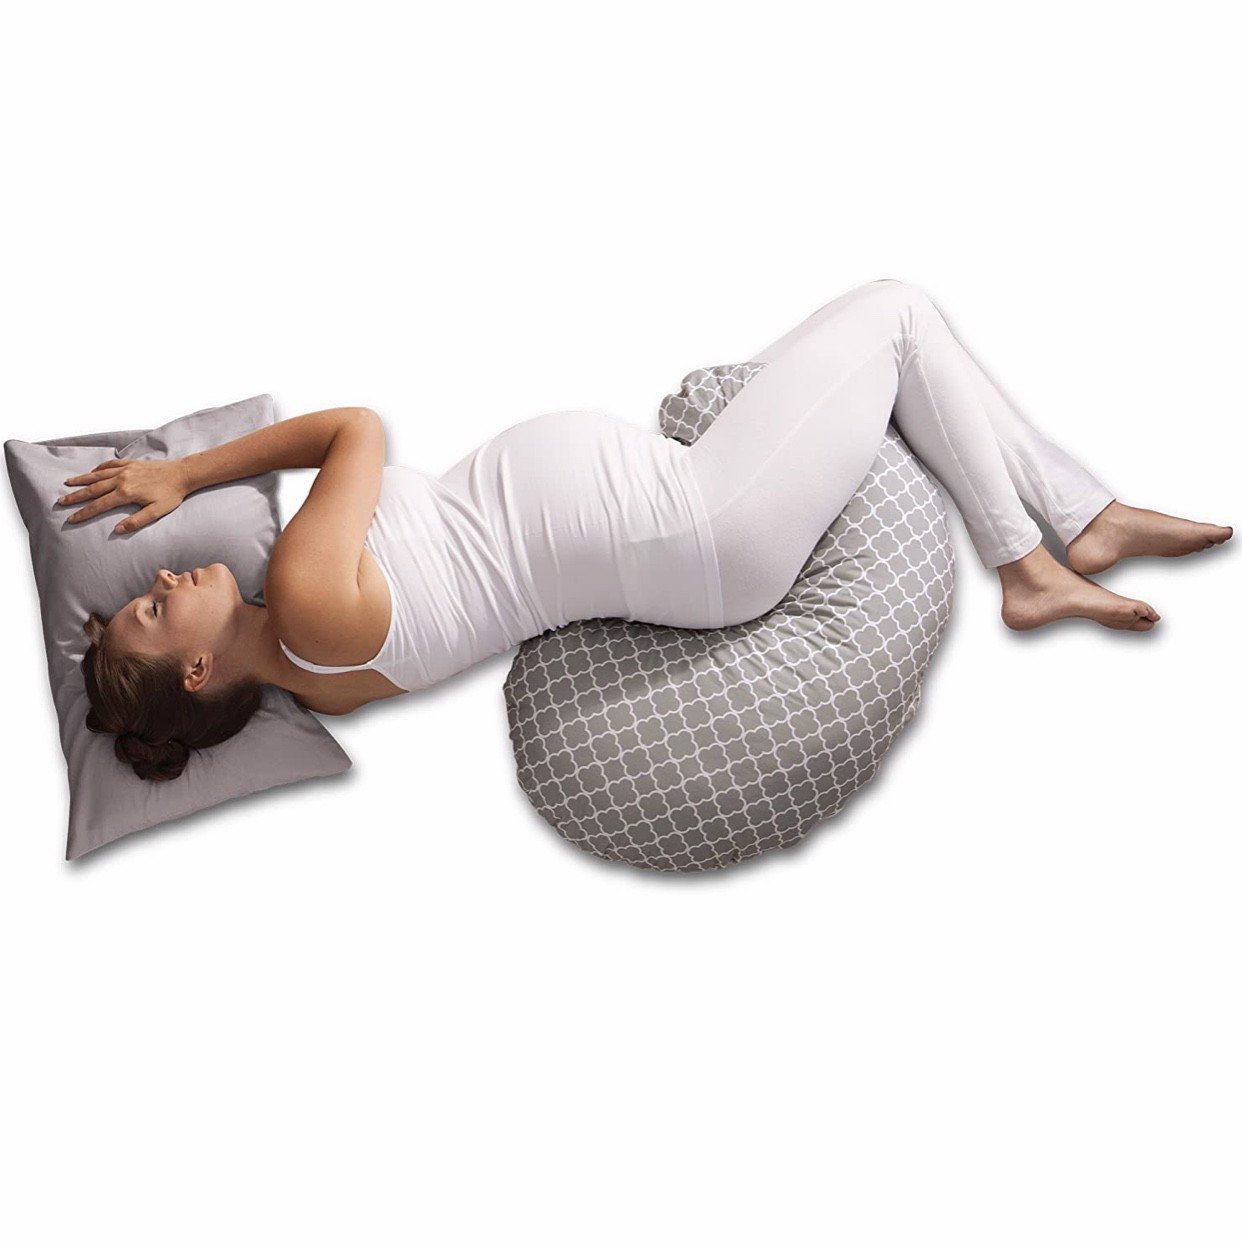 Gối nằm cho mẹ Boppy Pregnancy Support Pillow